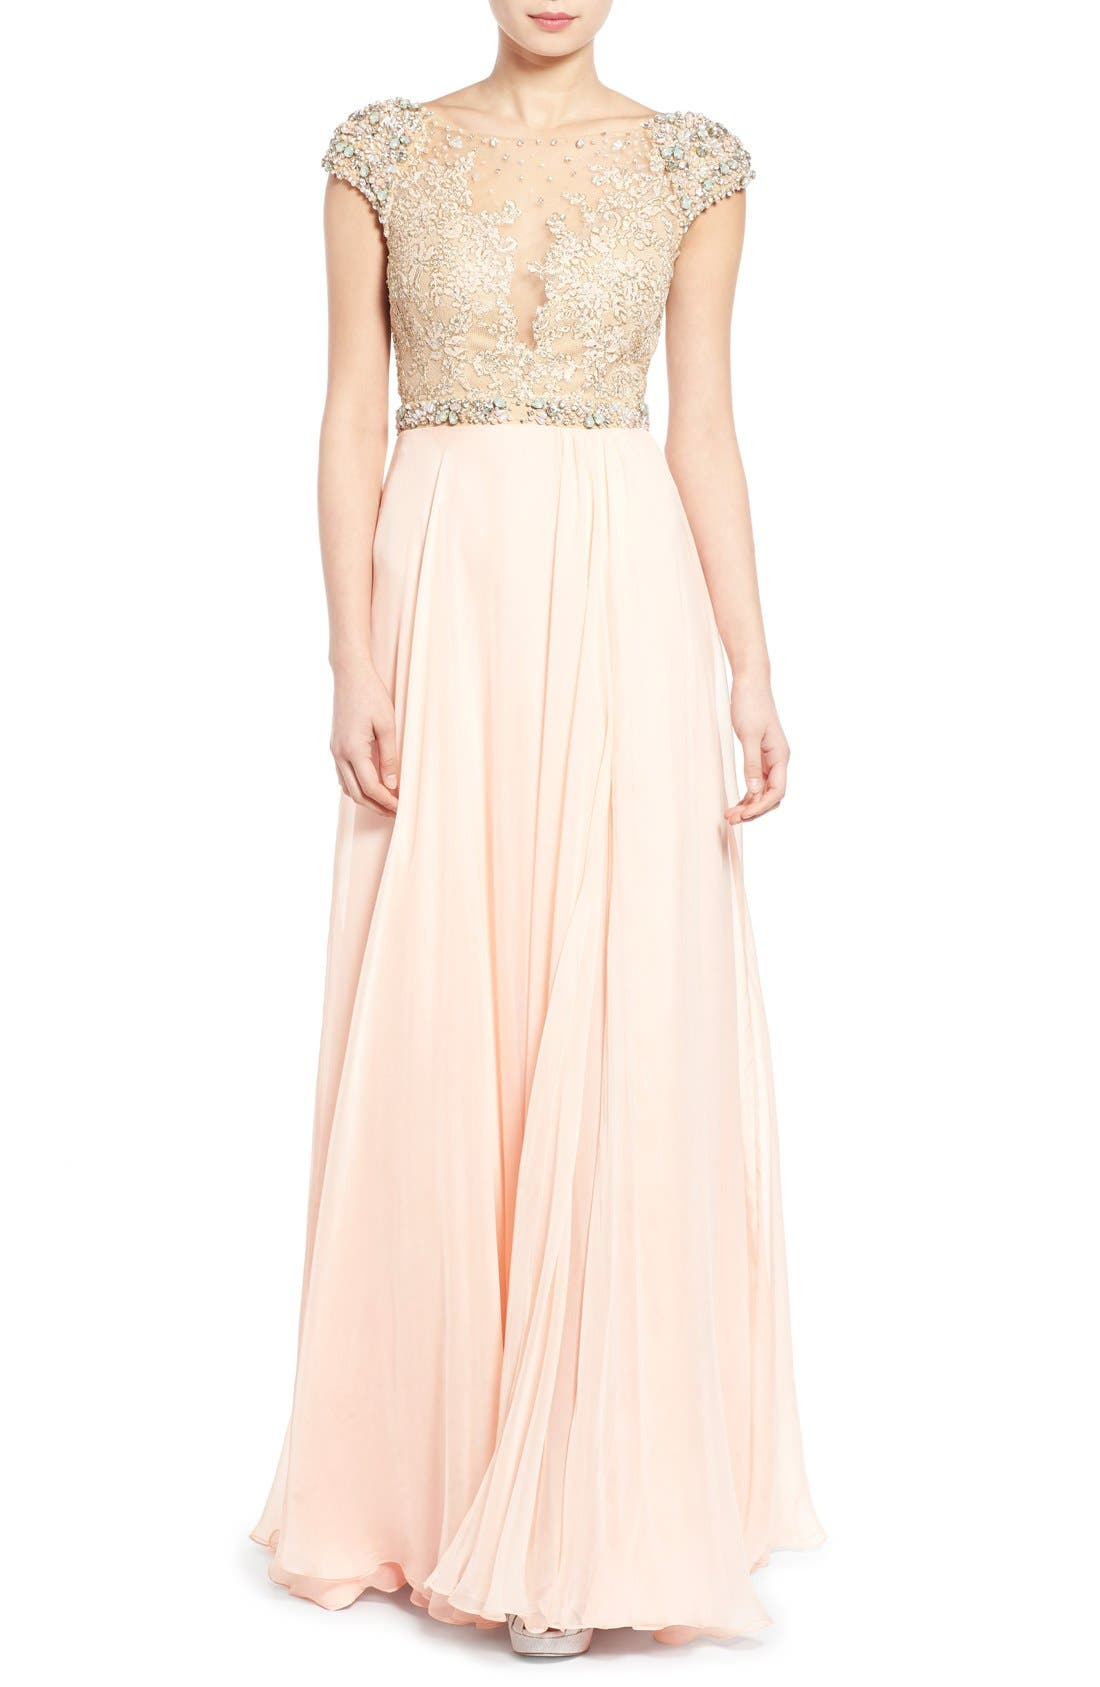 Main Image - Mac Duggal 'Gladys' Embellished Gown